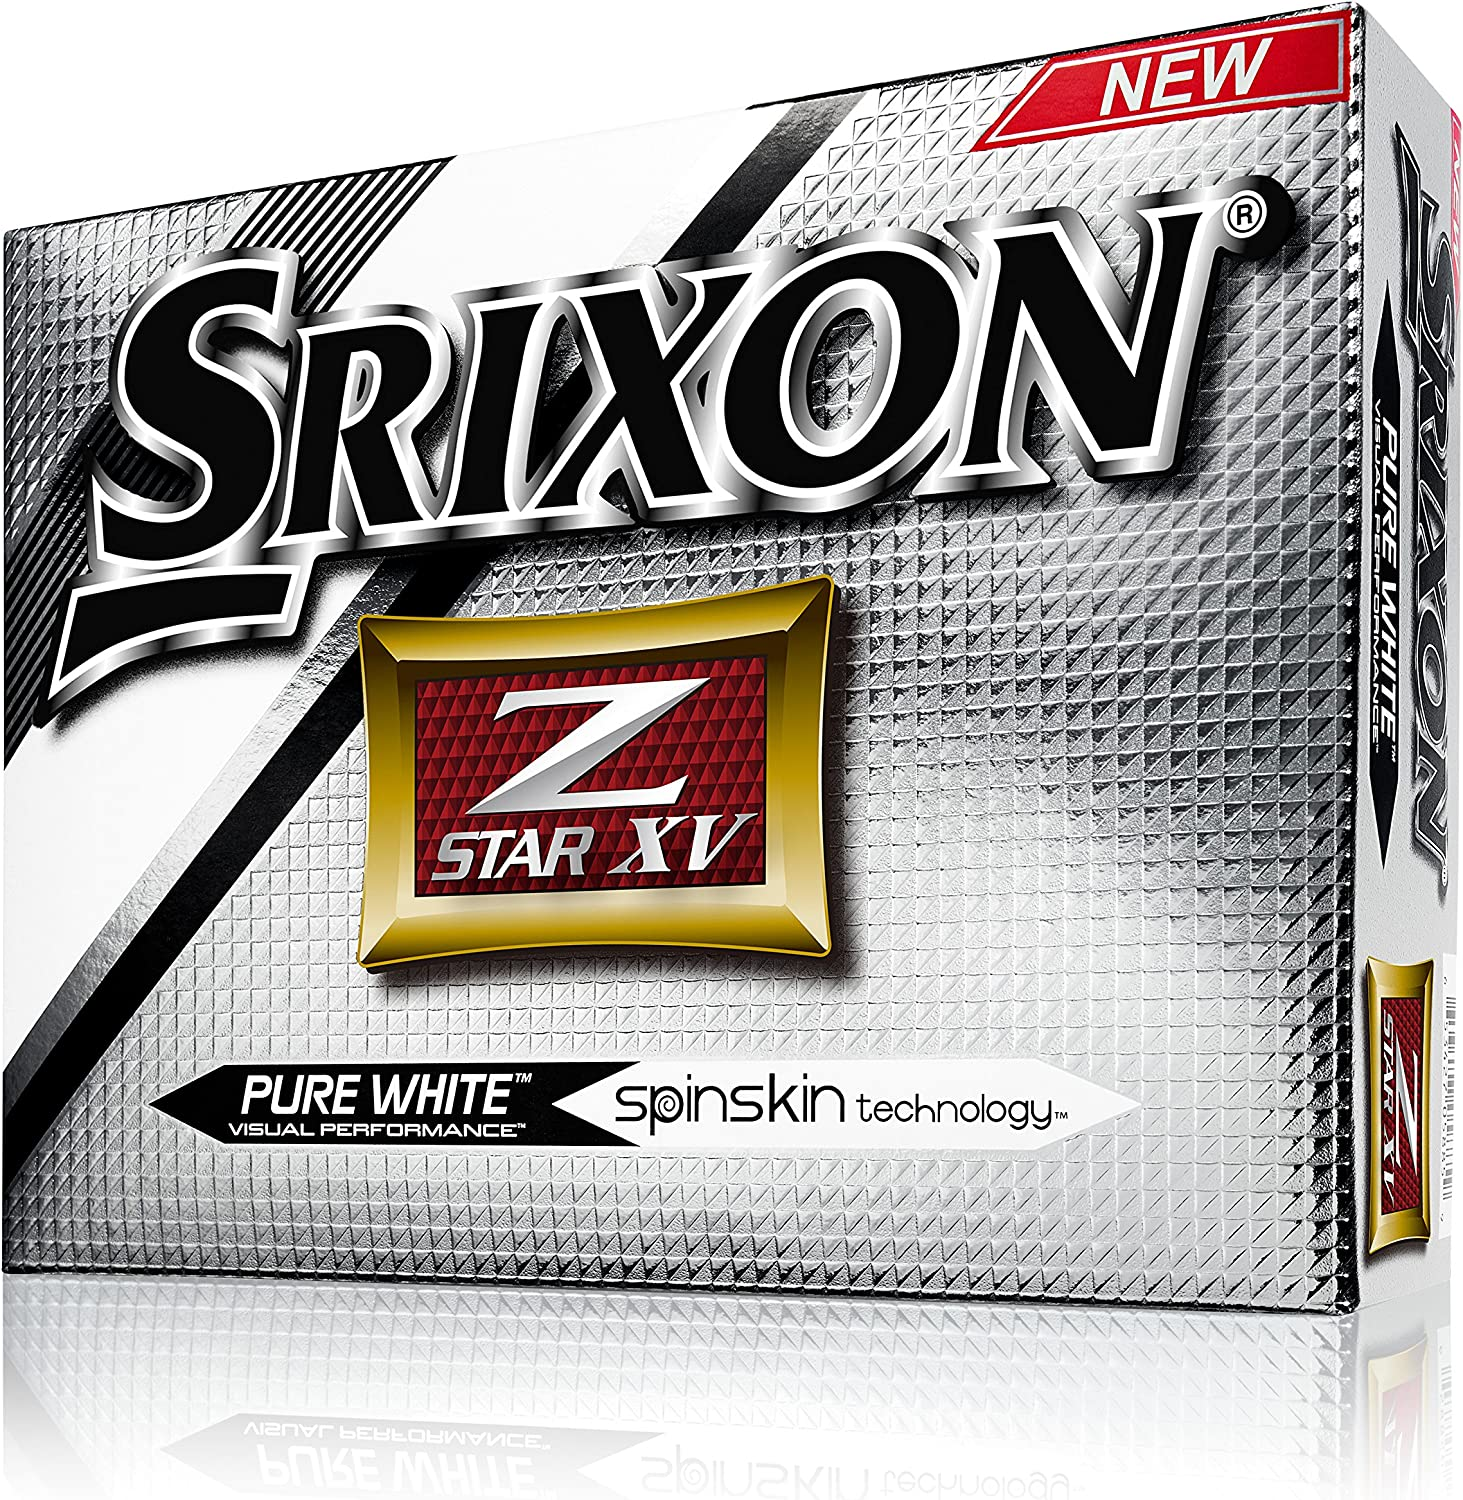 Srixon Z-Star XV 2016 Golf Balls (One Dozen)